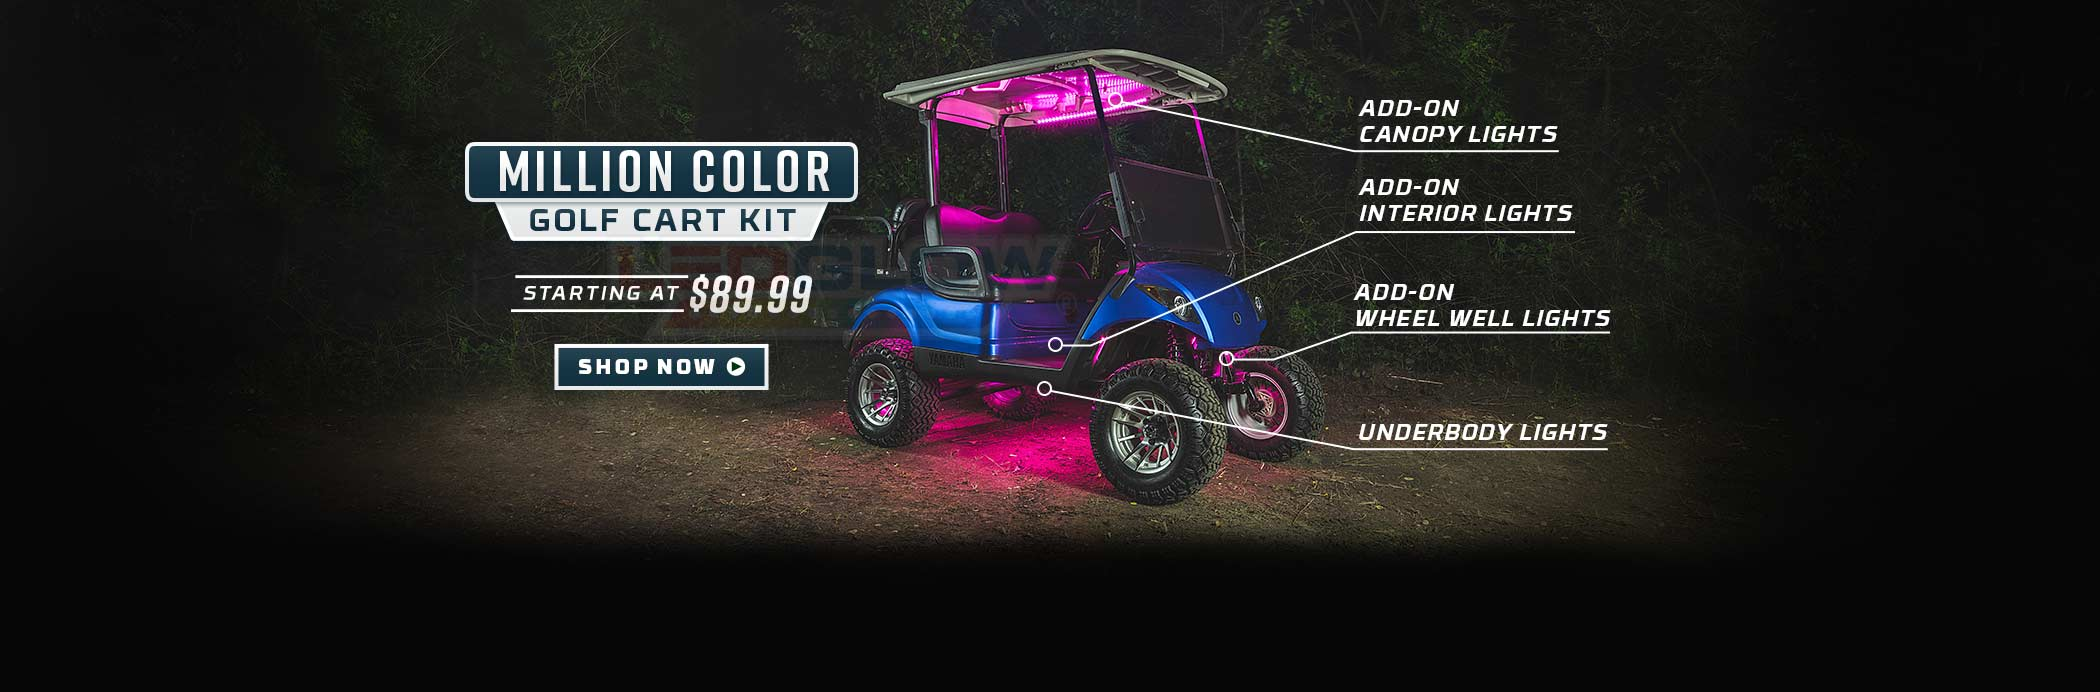 Million Color Golf Cart Underglow Lights